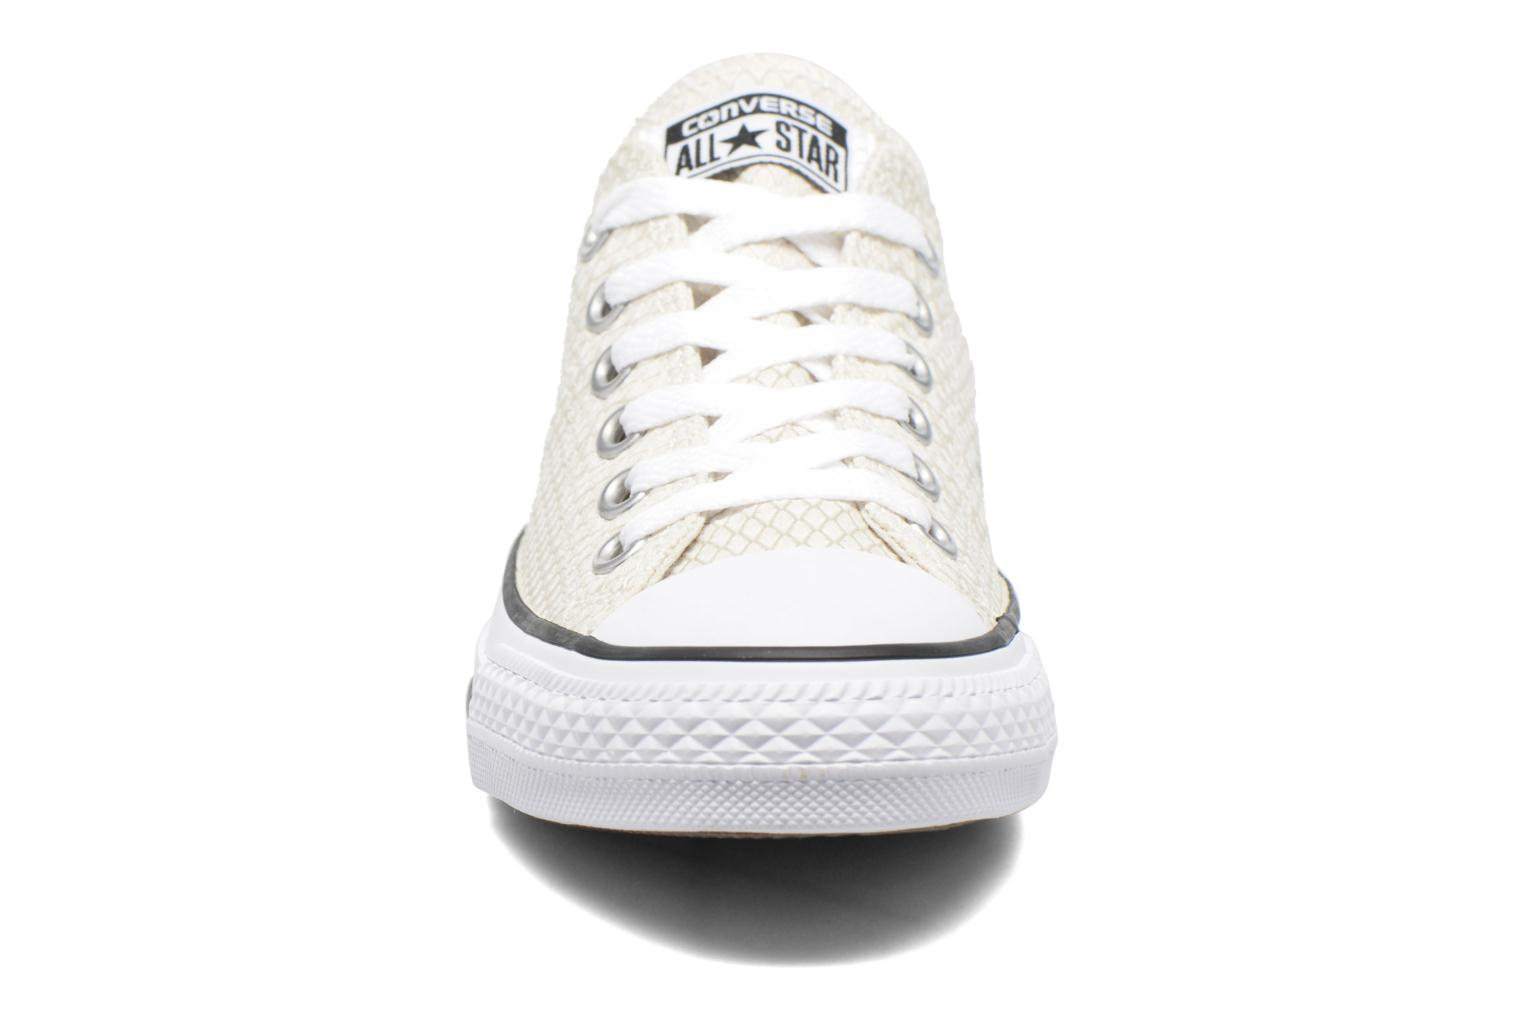 Chuck Taylor All Star Ox Snake Woven Buff/Black/White